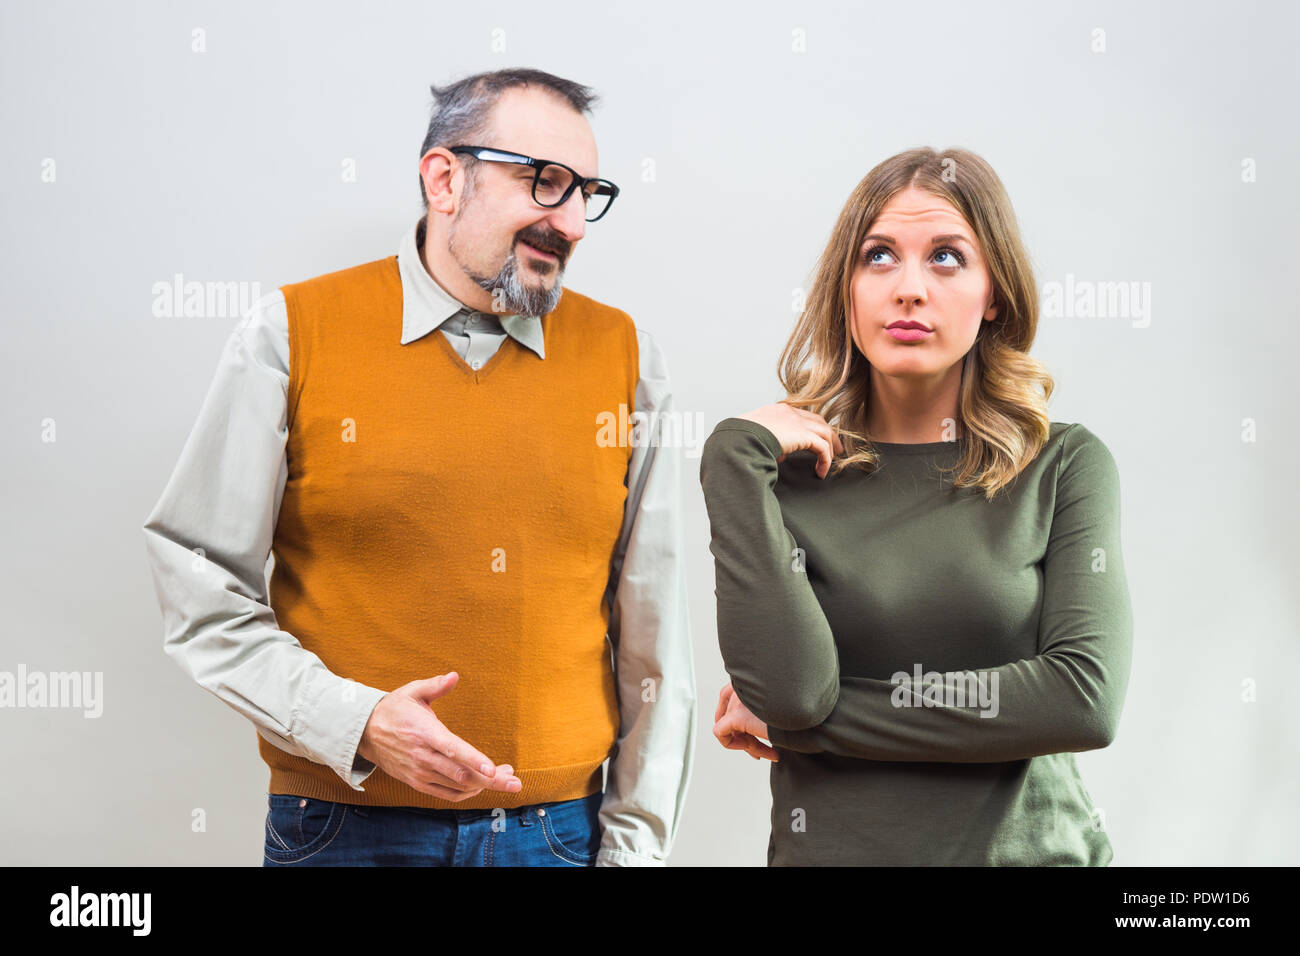 Nerdy man is trying to get beautiful woman's attention but she is not interested and angry ignore him. - Stock Image